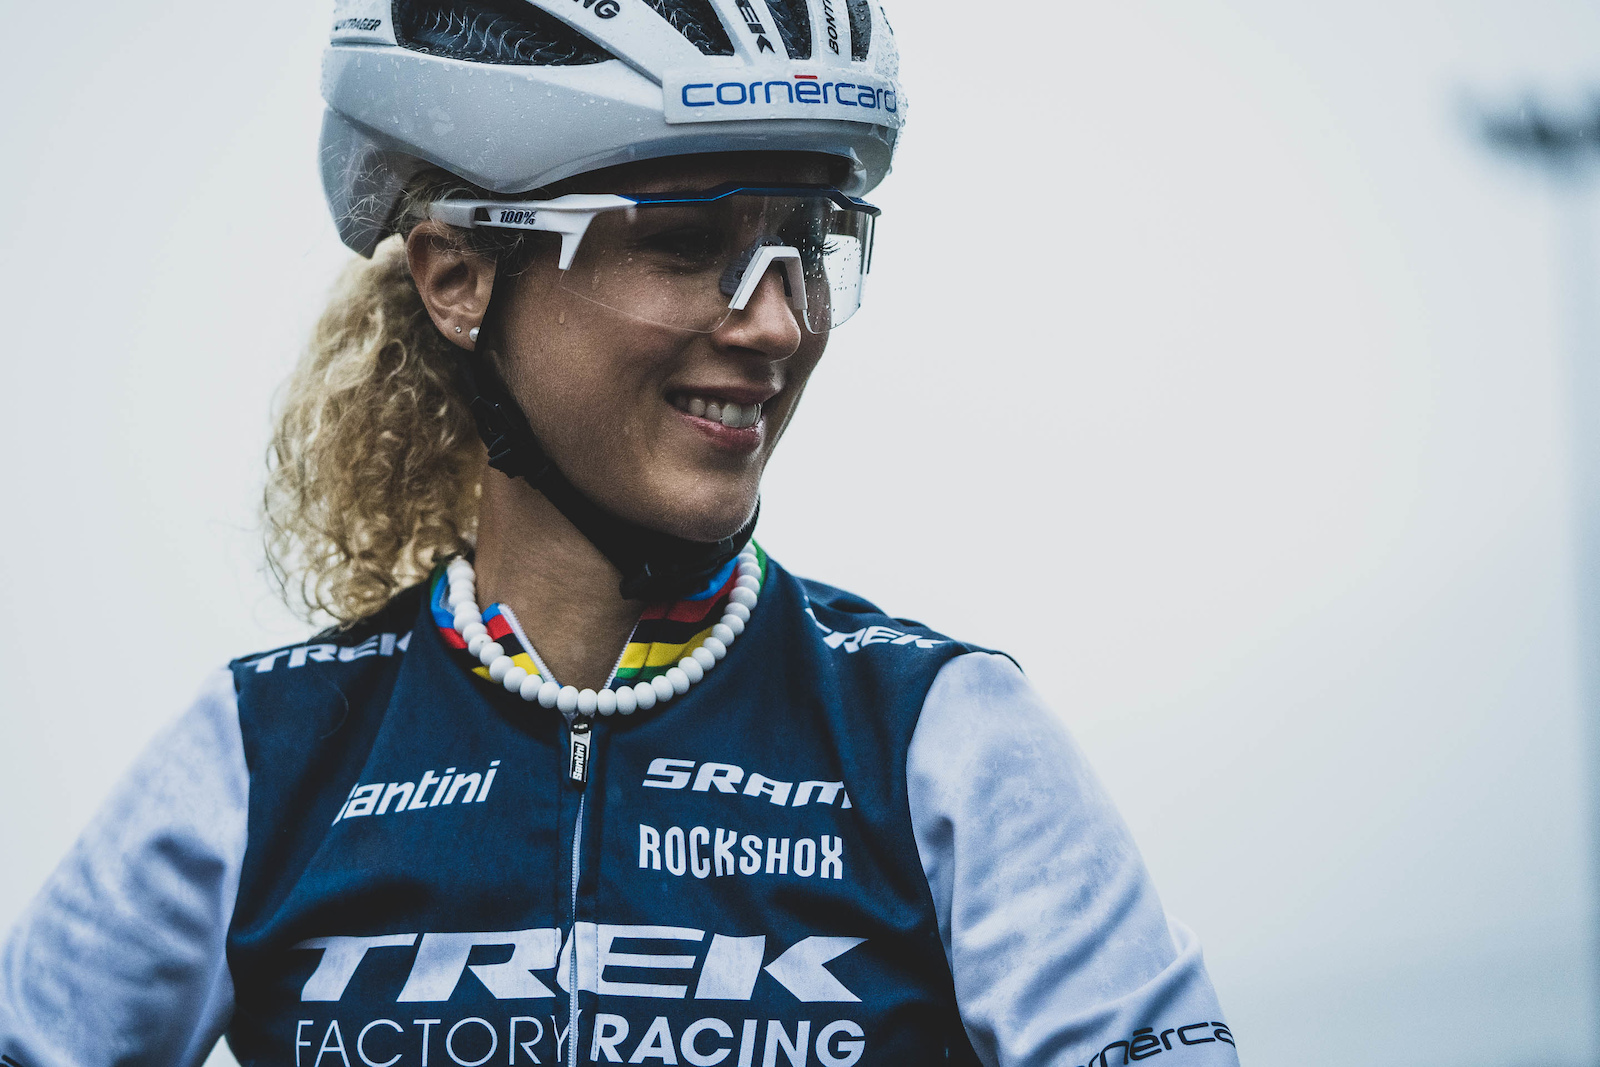 Jolanda Neff was all smiles as usual at the start.